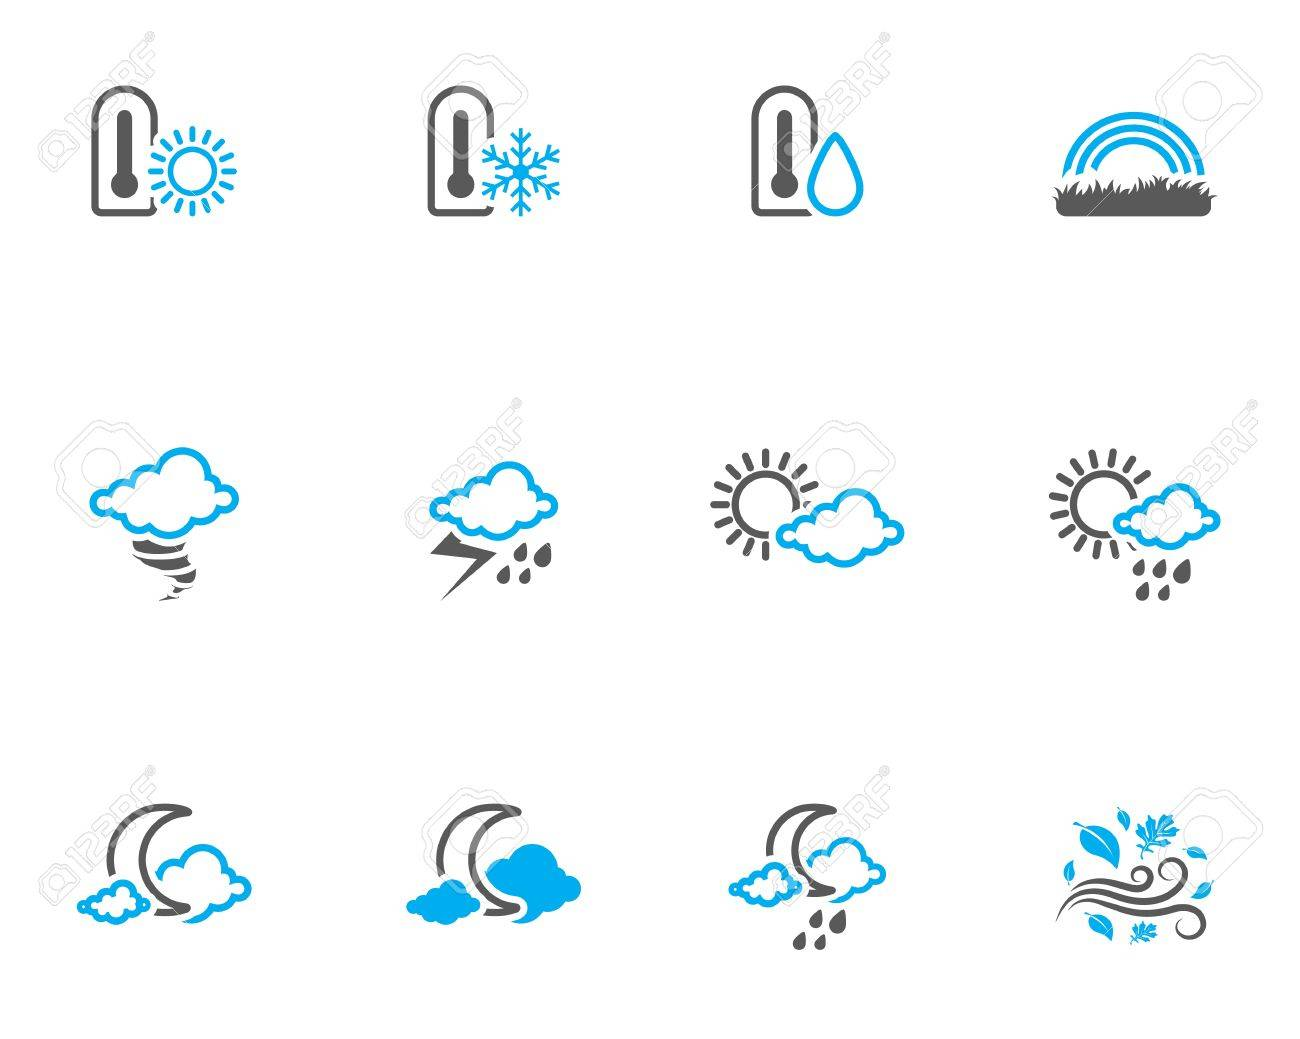 More weather icon series in duo tone color style. Stock Vector - 17233962